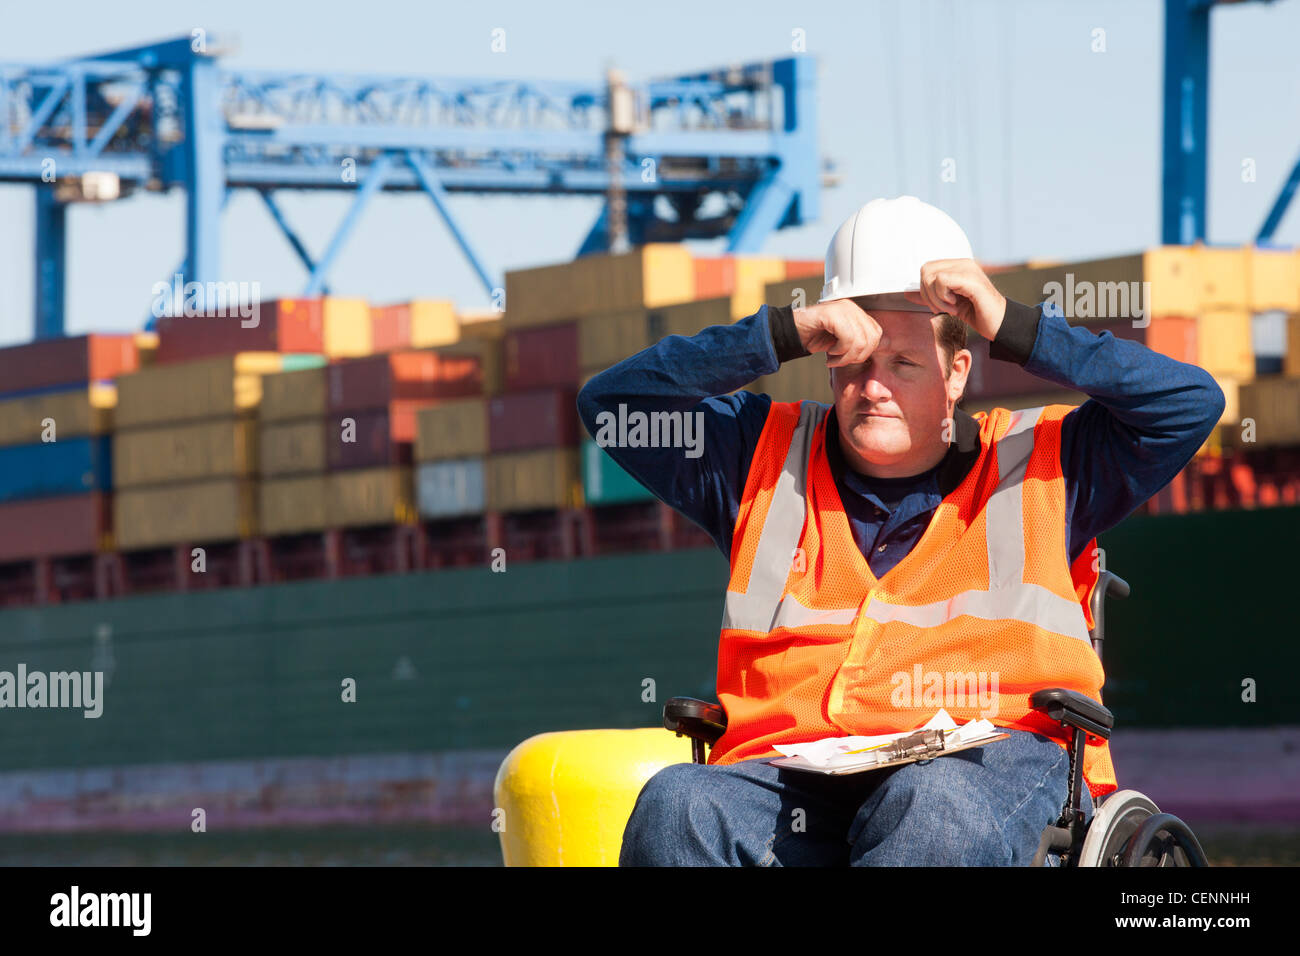 Transportation engineer in a wheelchair recording data for shipping containers and experiencing hot sun Stock Photo